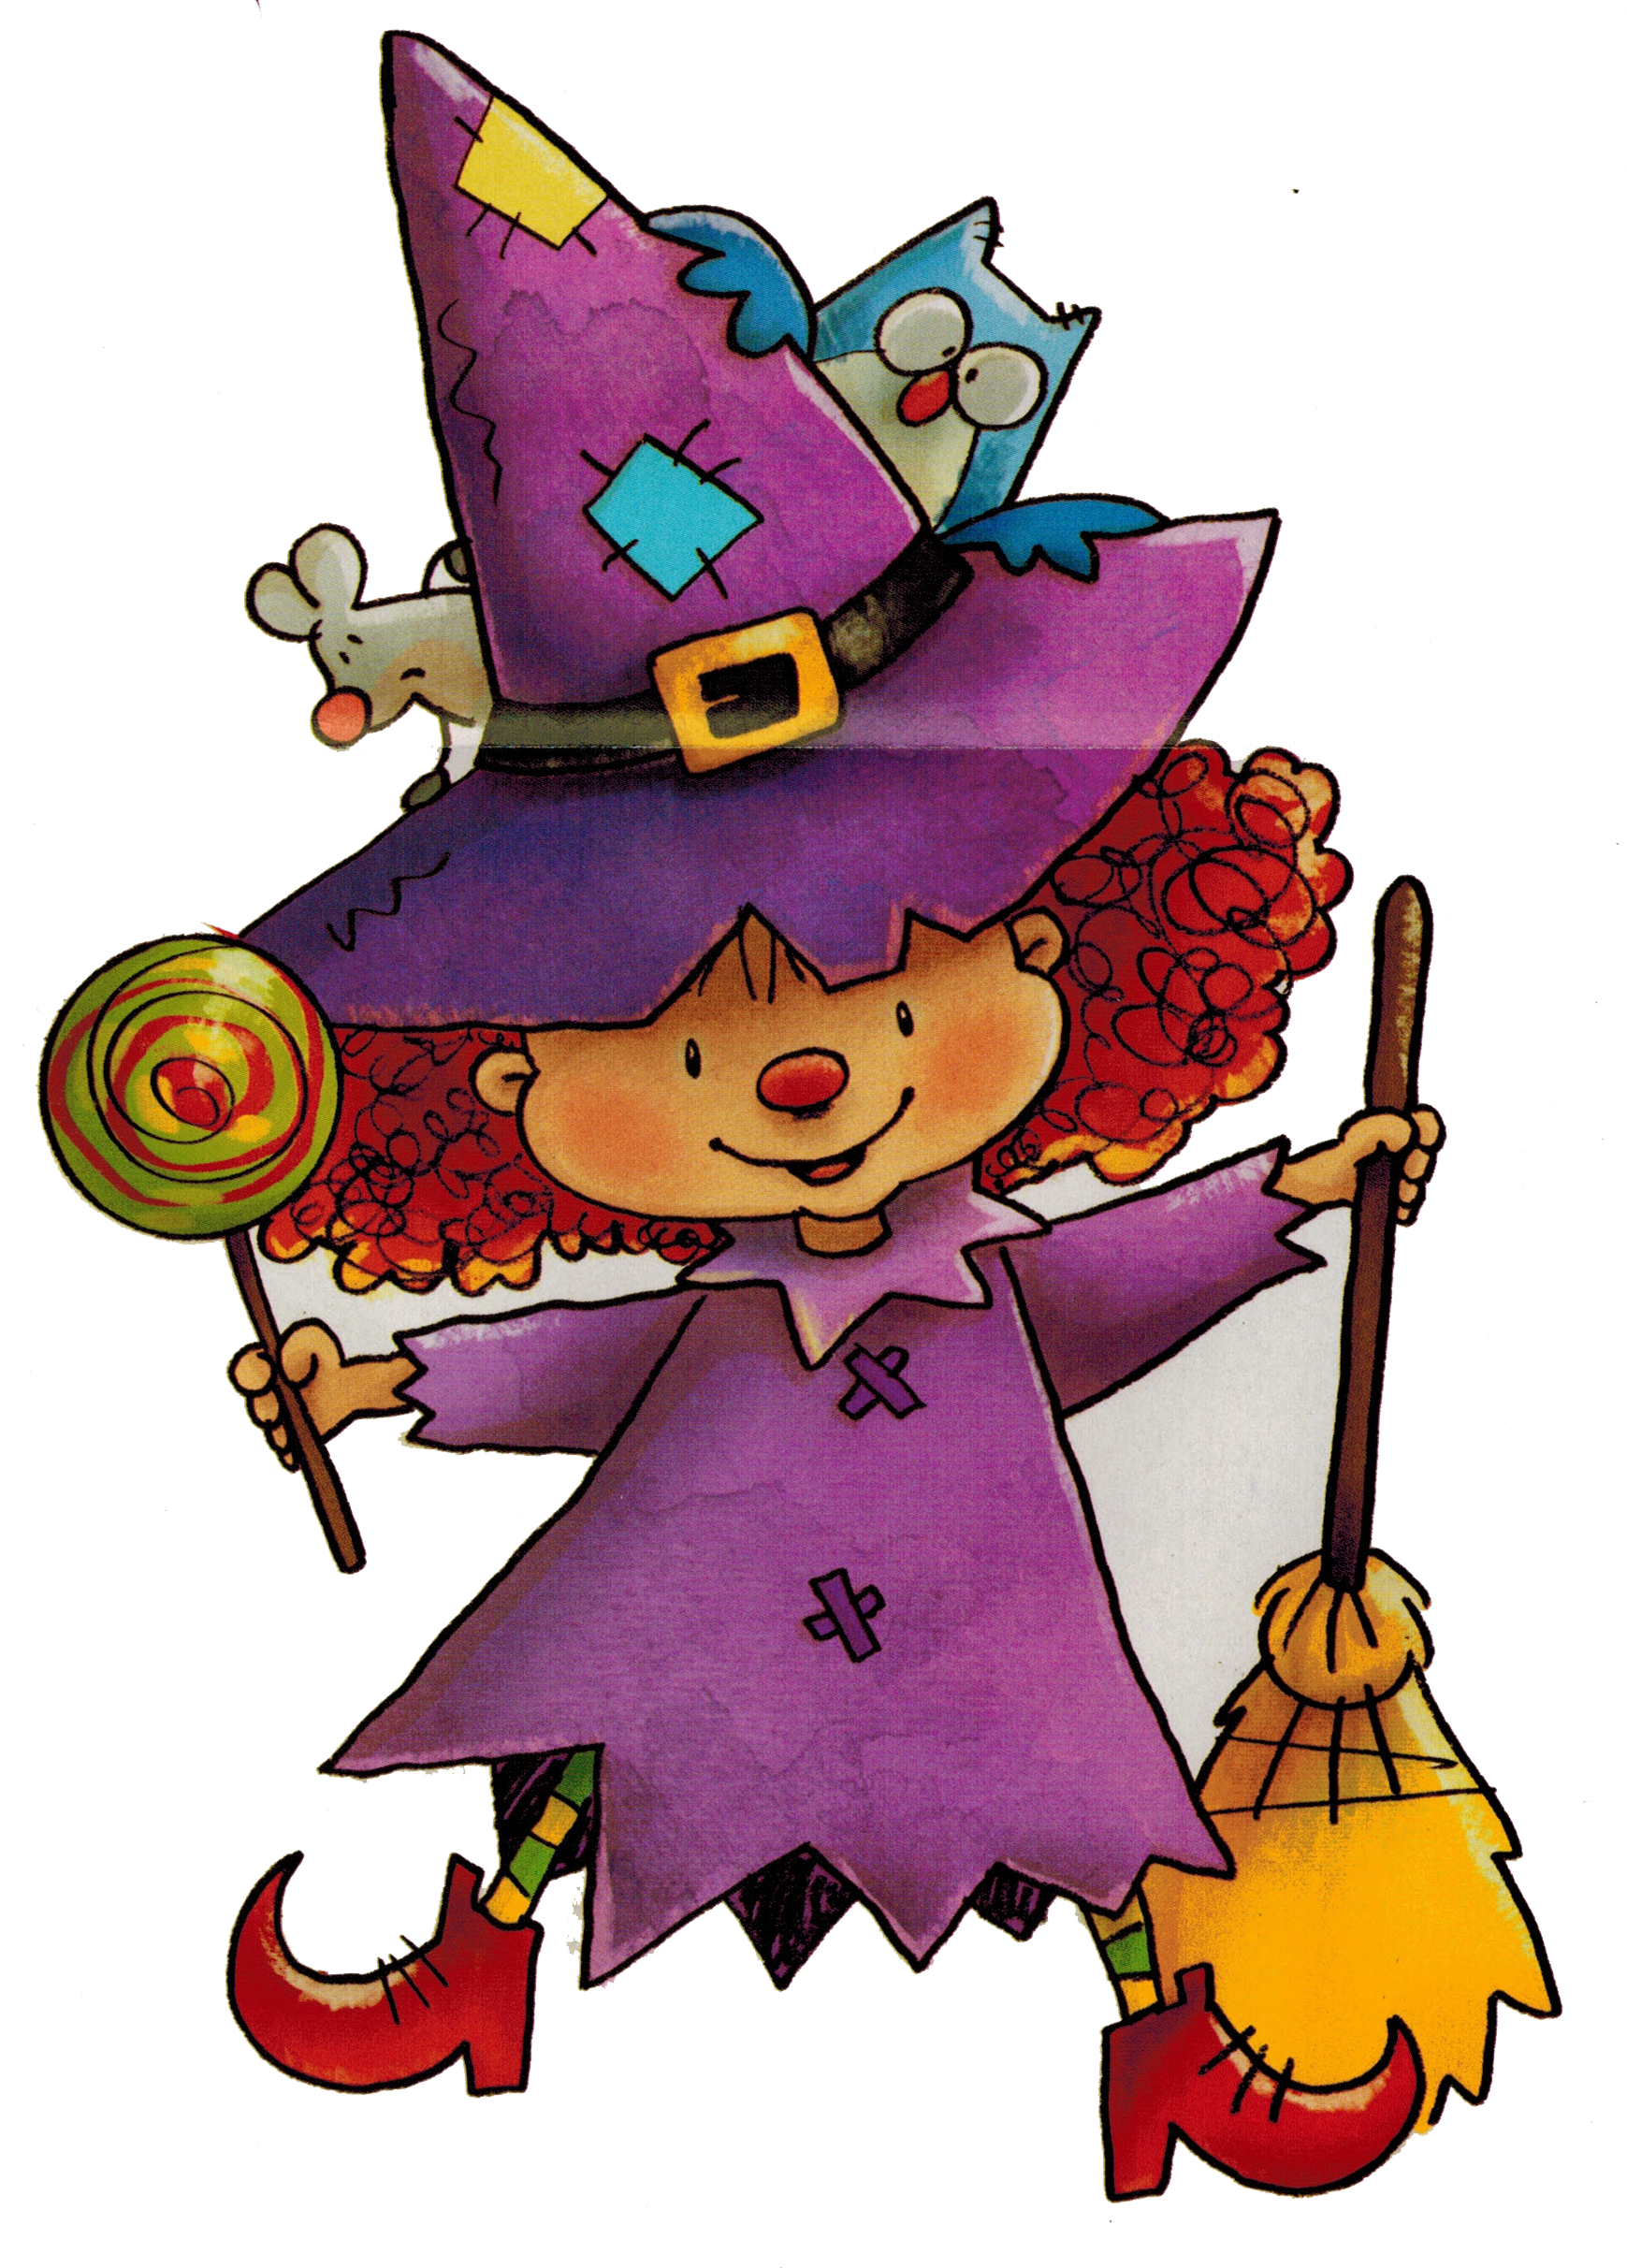 Free country halloween clipart picture transparent library Pin by Ellen De Buck on heksen - nieuwsgierig lotje | Pinterest ... picture transparent library